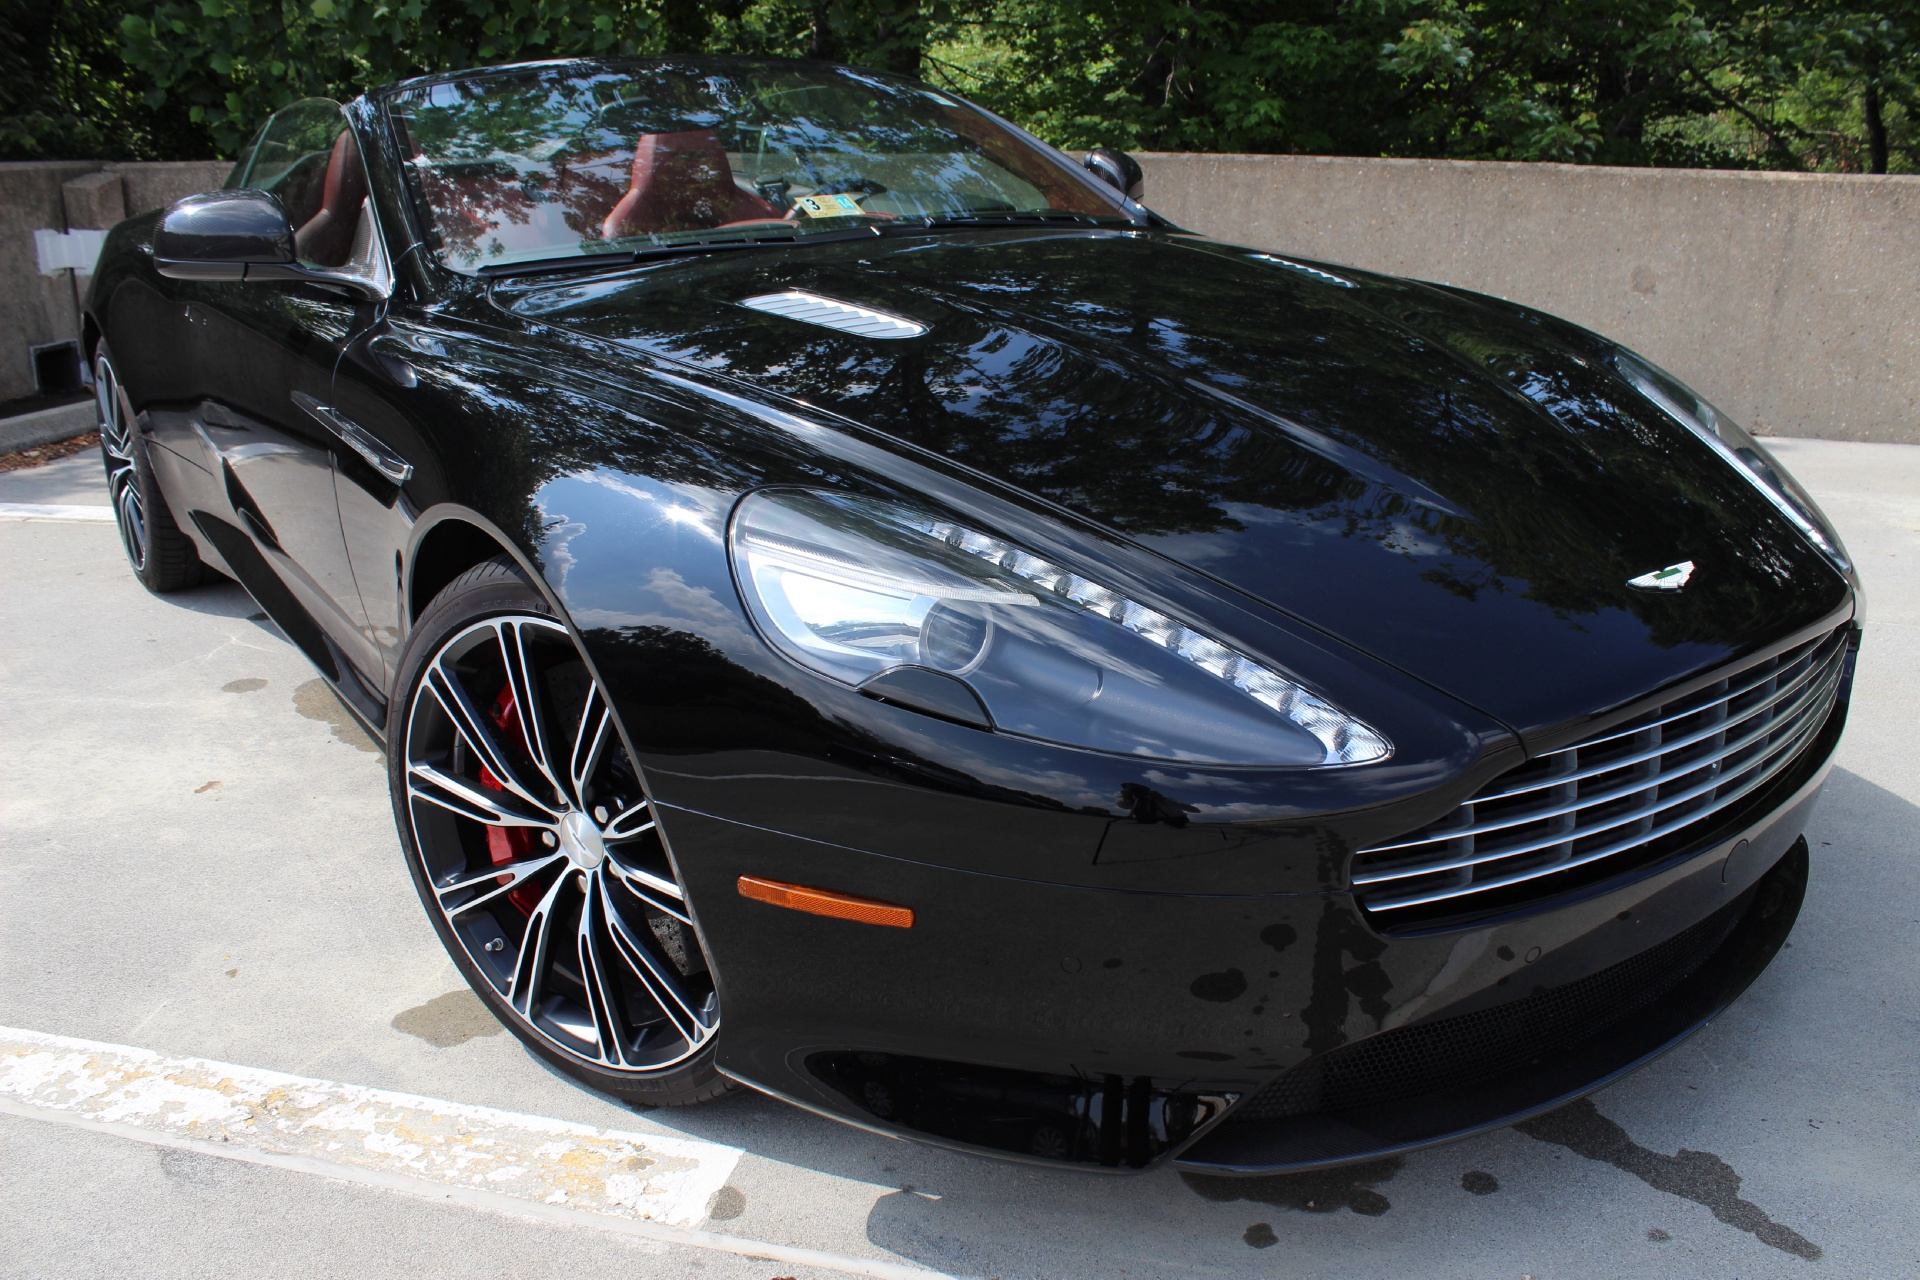 2014 Aston Martin Db9 Volante Stock 4nb15042 For Sale Near Vienna Va Va Aston Martin Dealer